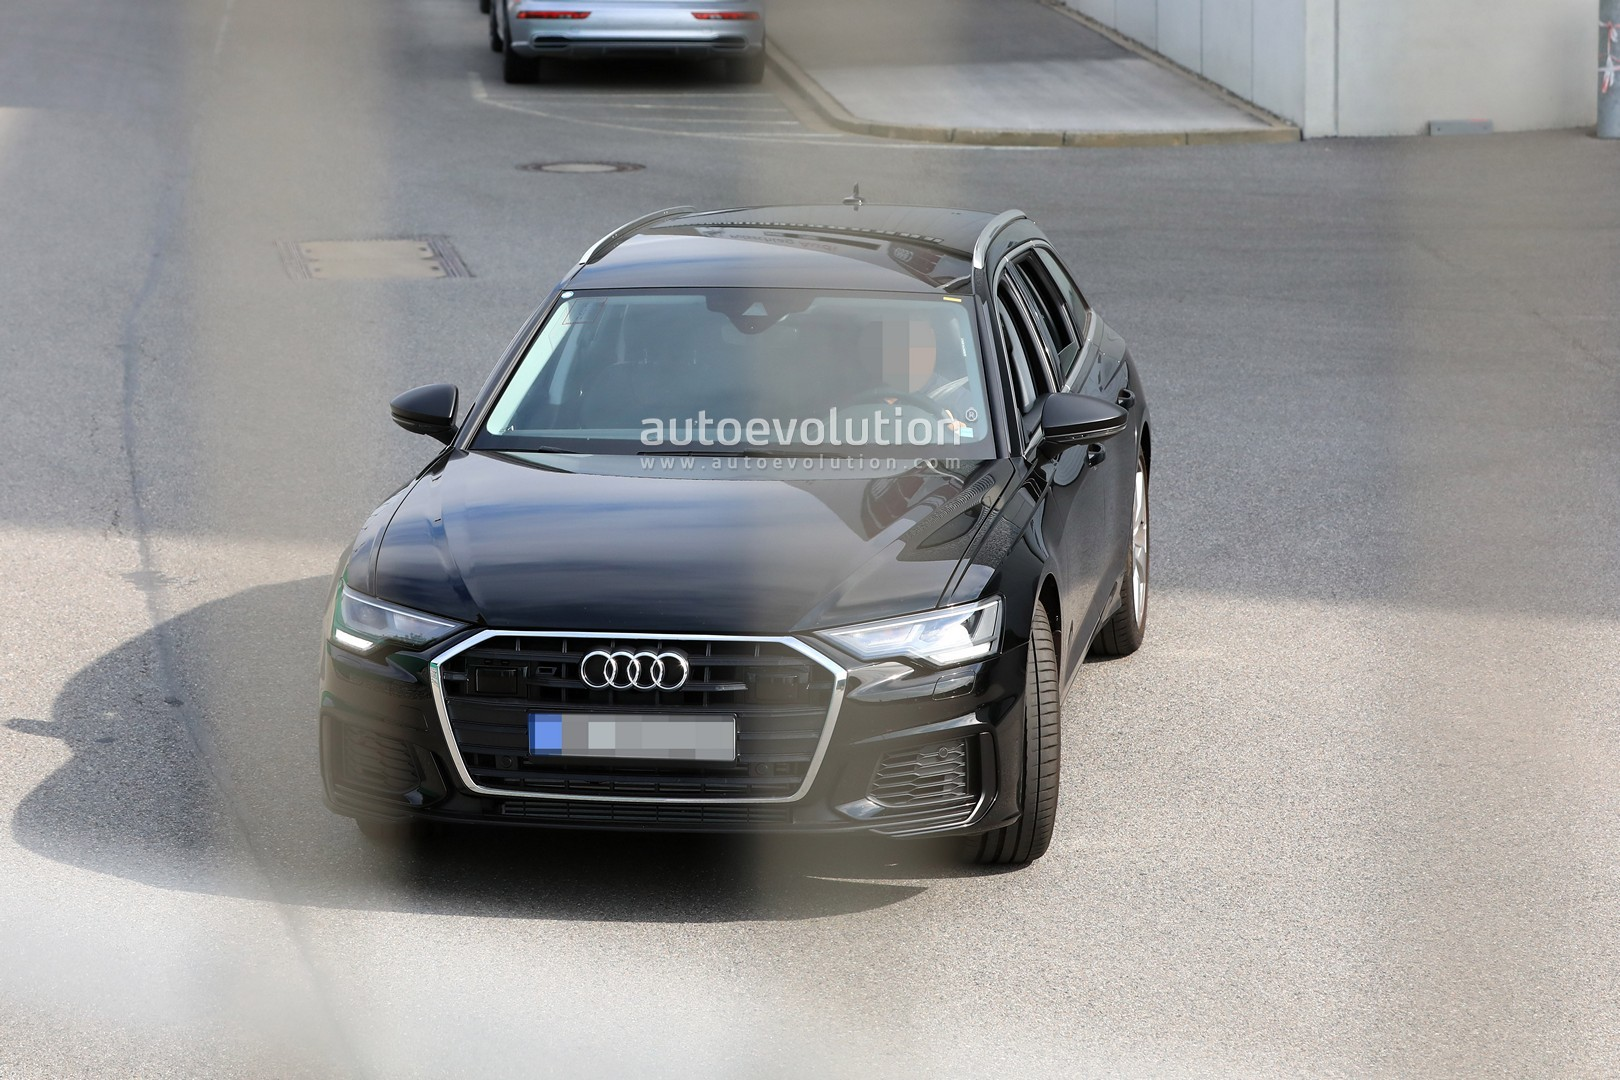 2020 Audi S6 Avant Spied With No Camo Looks Very Understated